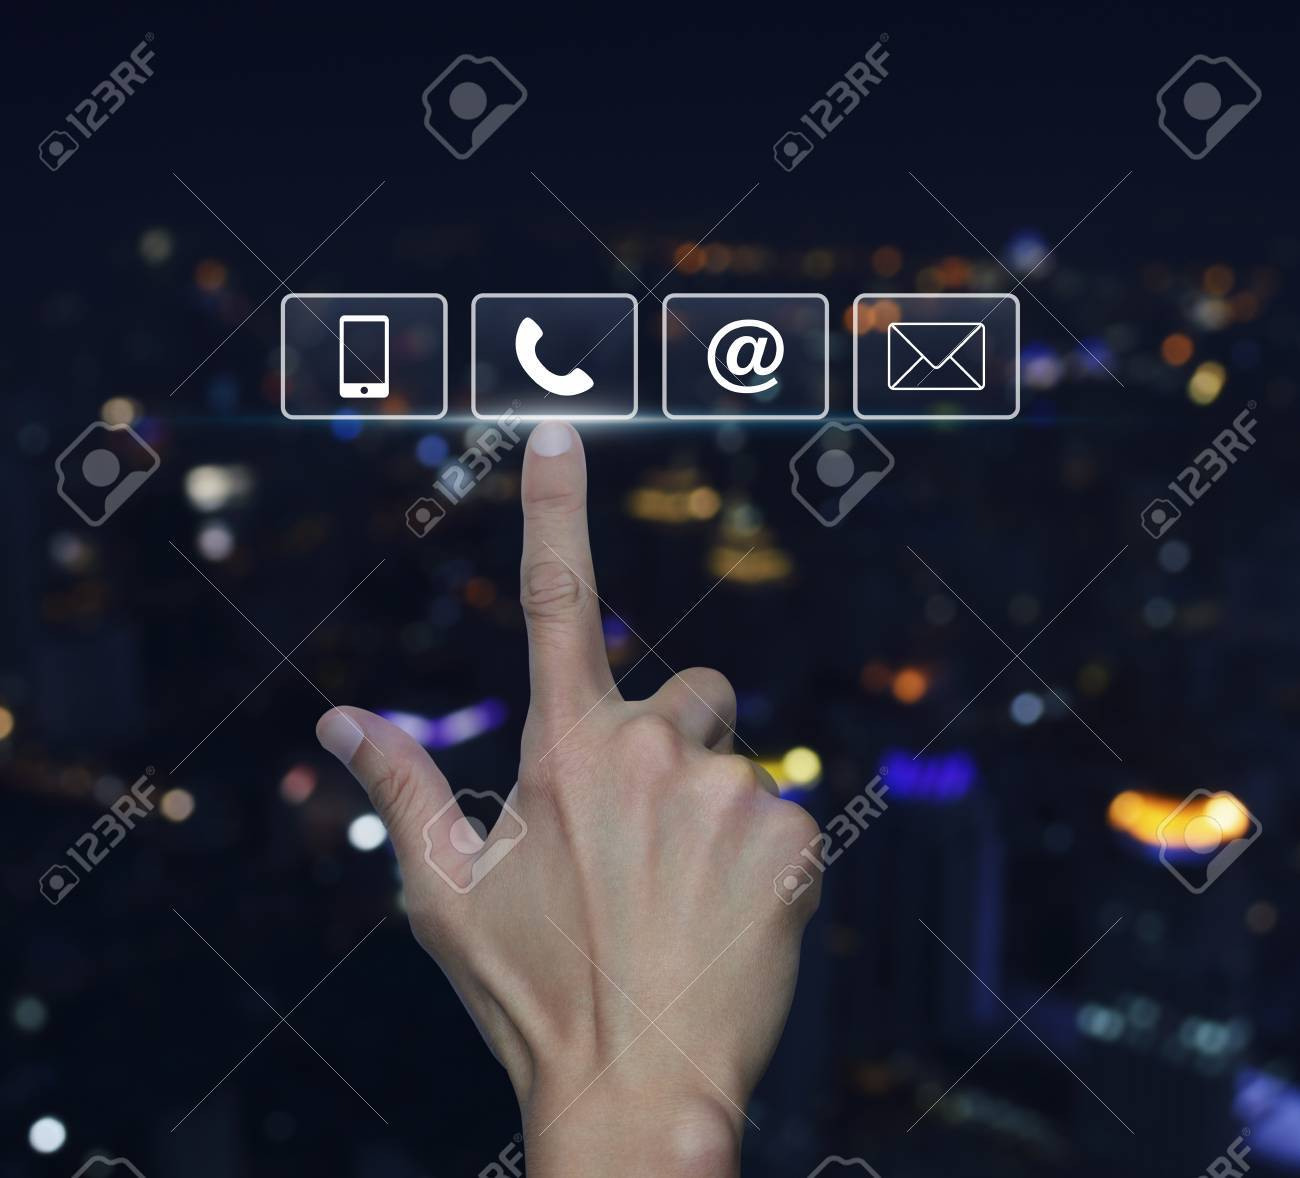 Background image email support - Hand Pressing Telephone Mobile Phone At And Email Buttons Over Blurred Light City Tower